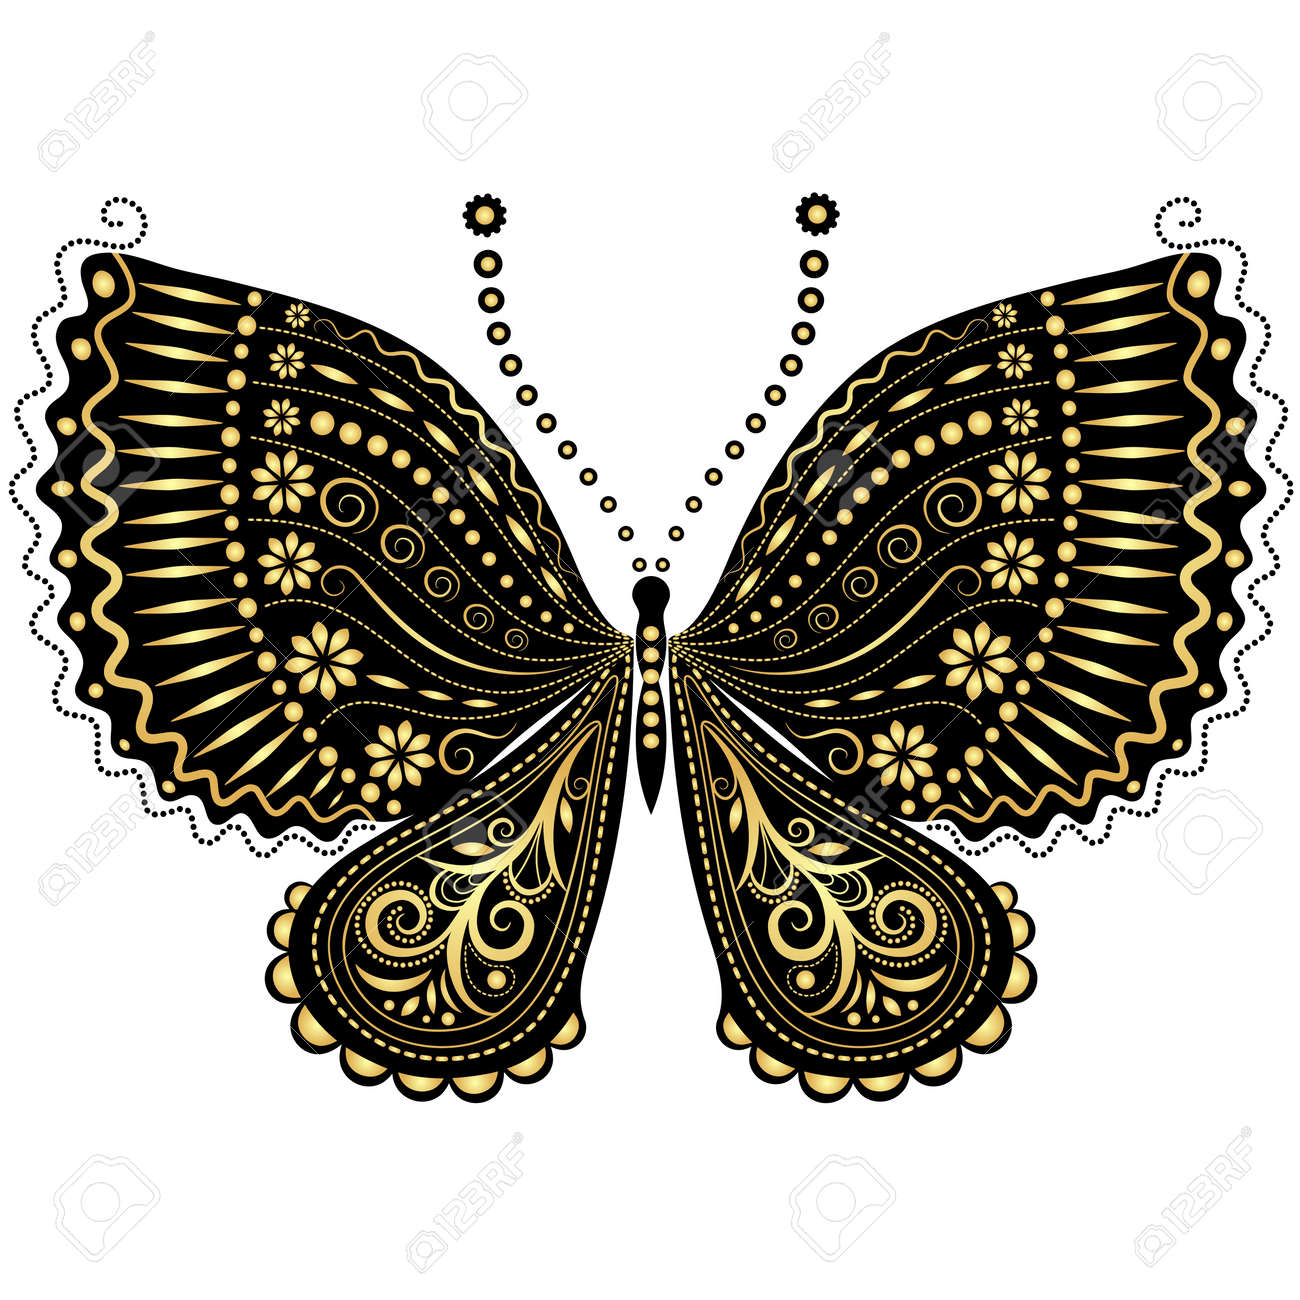 decorative fantasy gold and black vintage butterfly on white